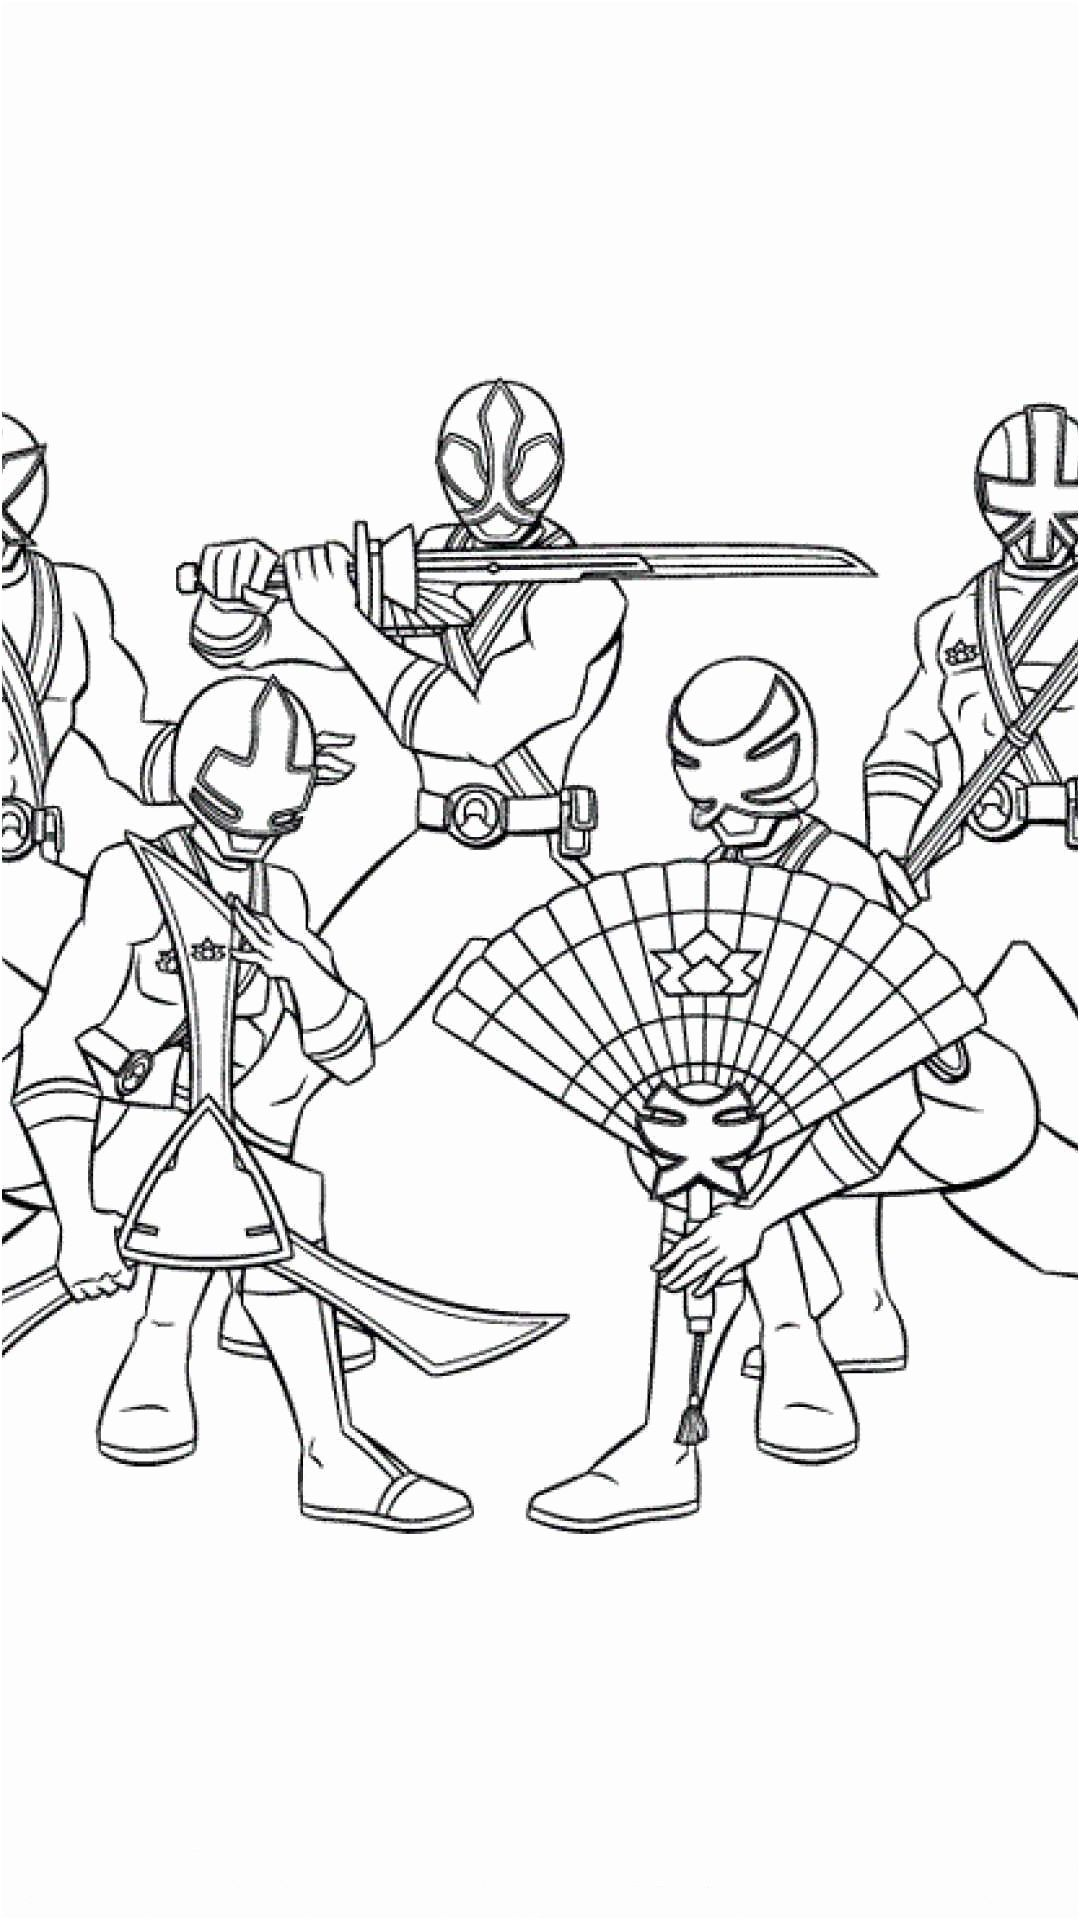 Meilleur Coloriage Powers Rangers Dino Charge 78 Dans Coloriage Inspiration with Coloriage Powers Rangers Dino Charge